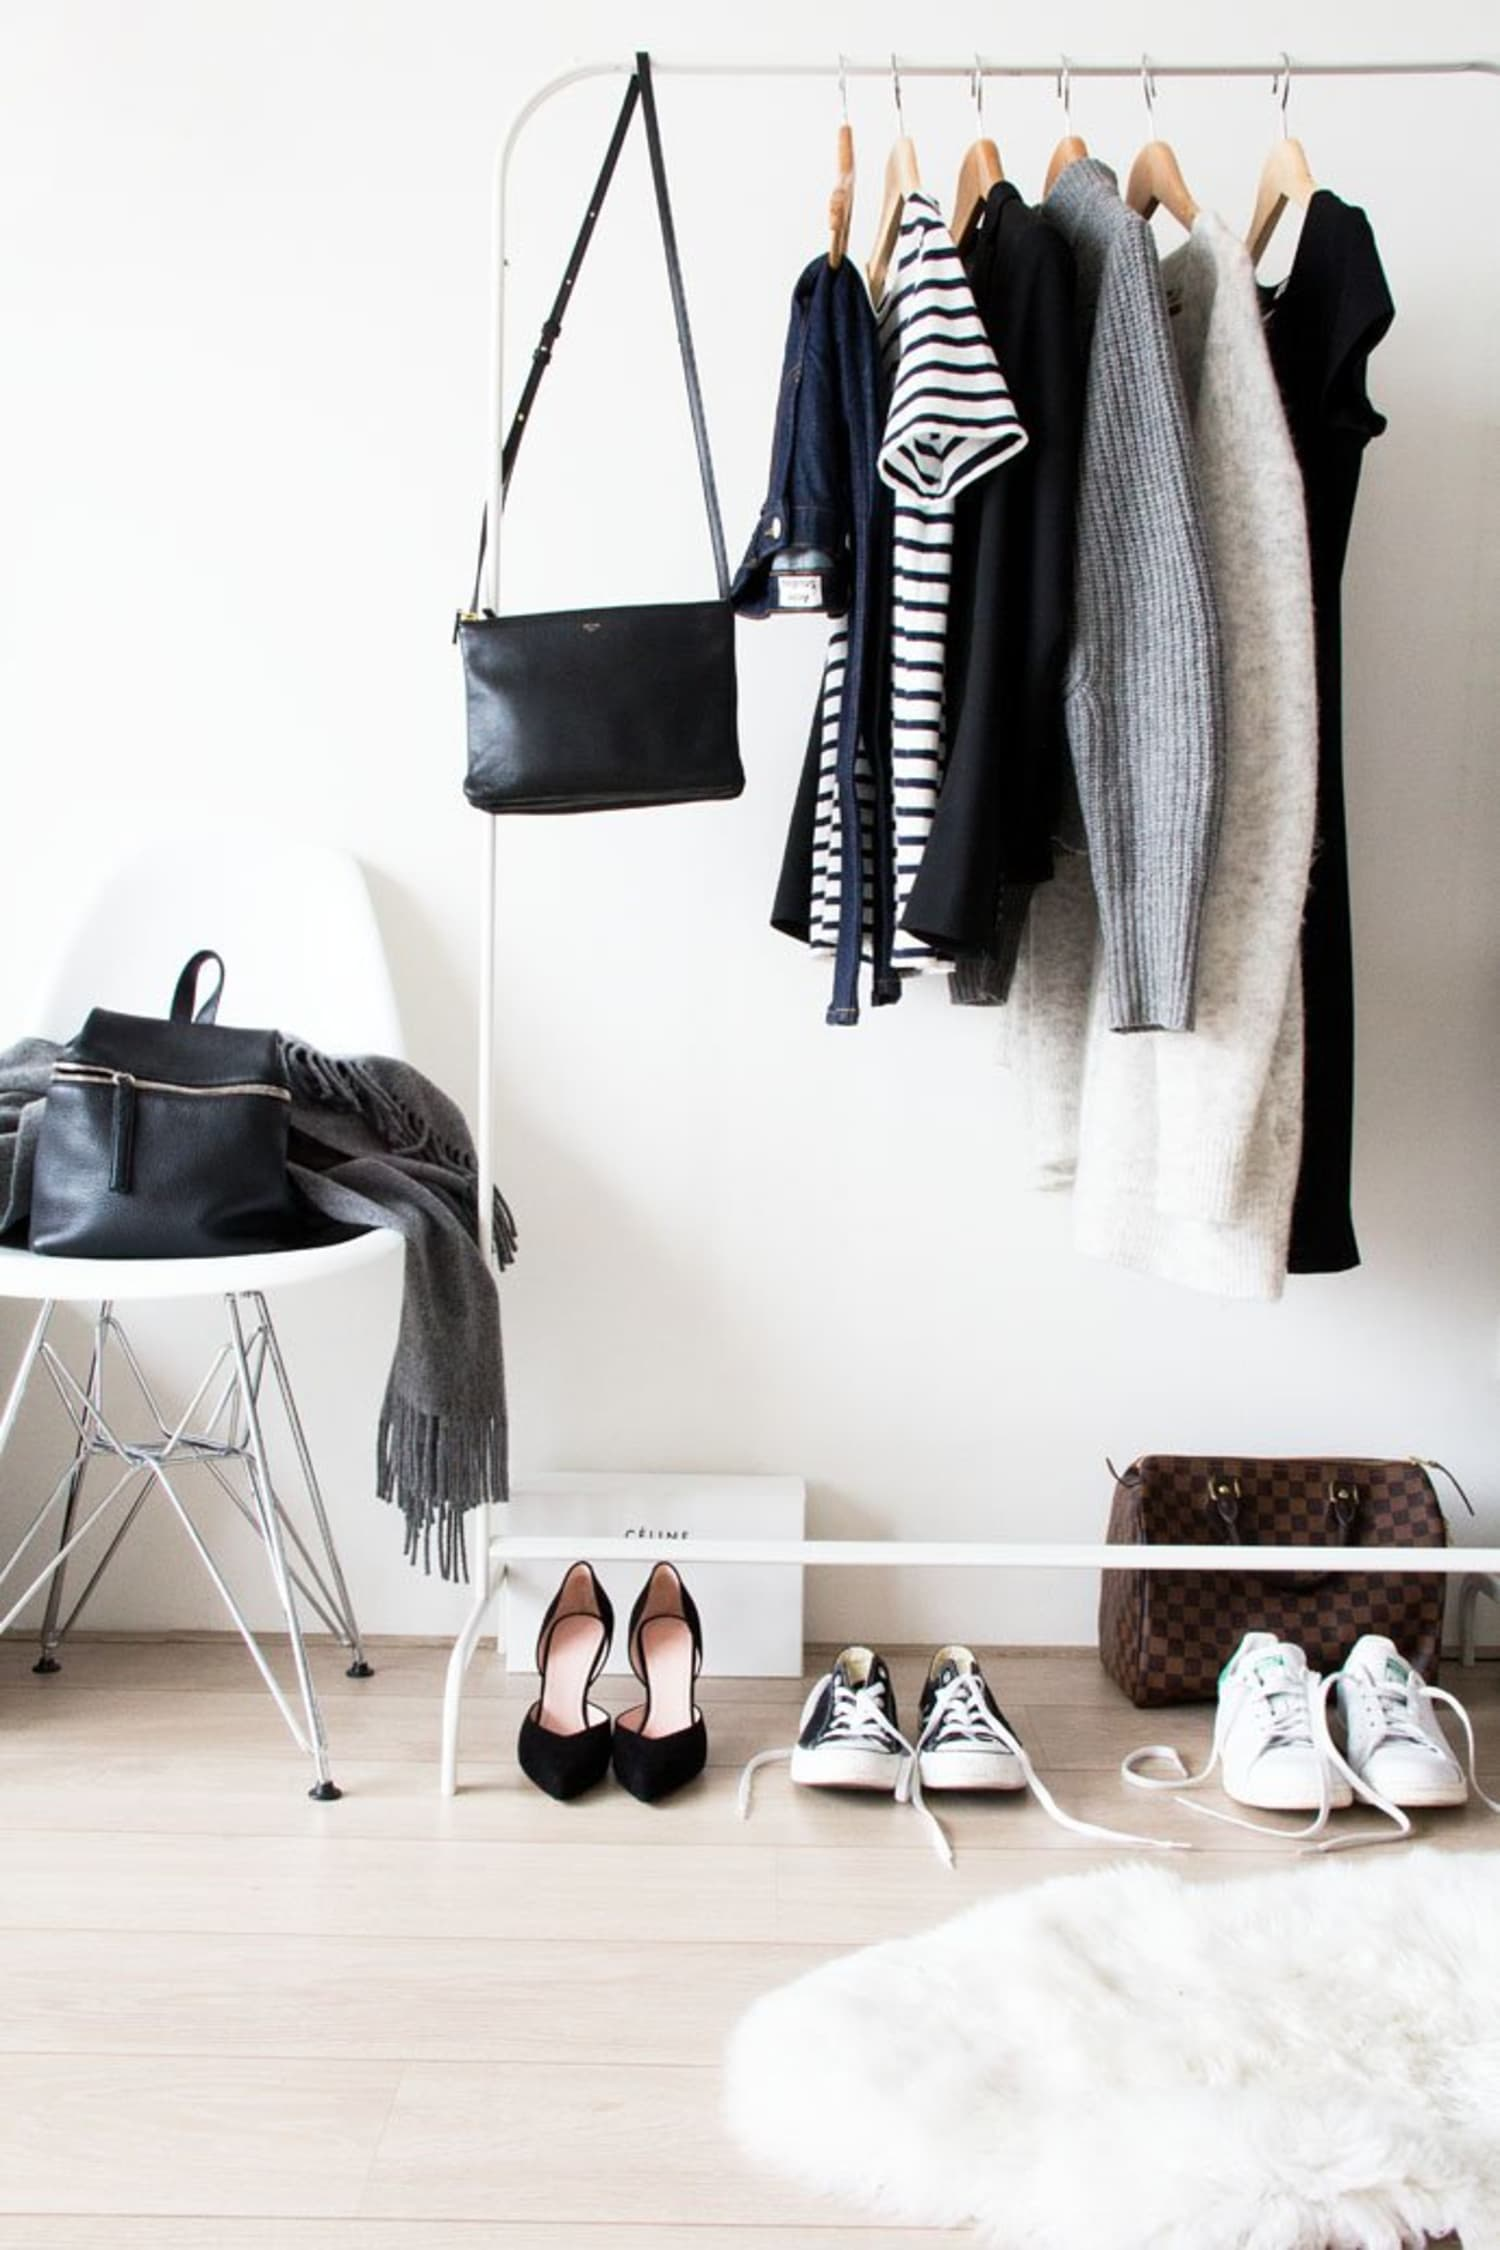 My Capsule Wardrobe Experiment: Part One – Why I Decided To Pare Down